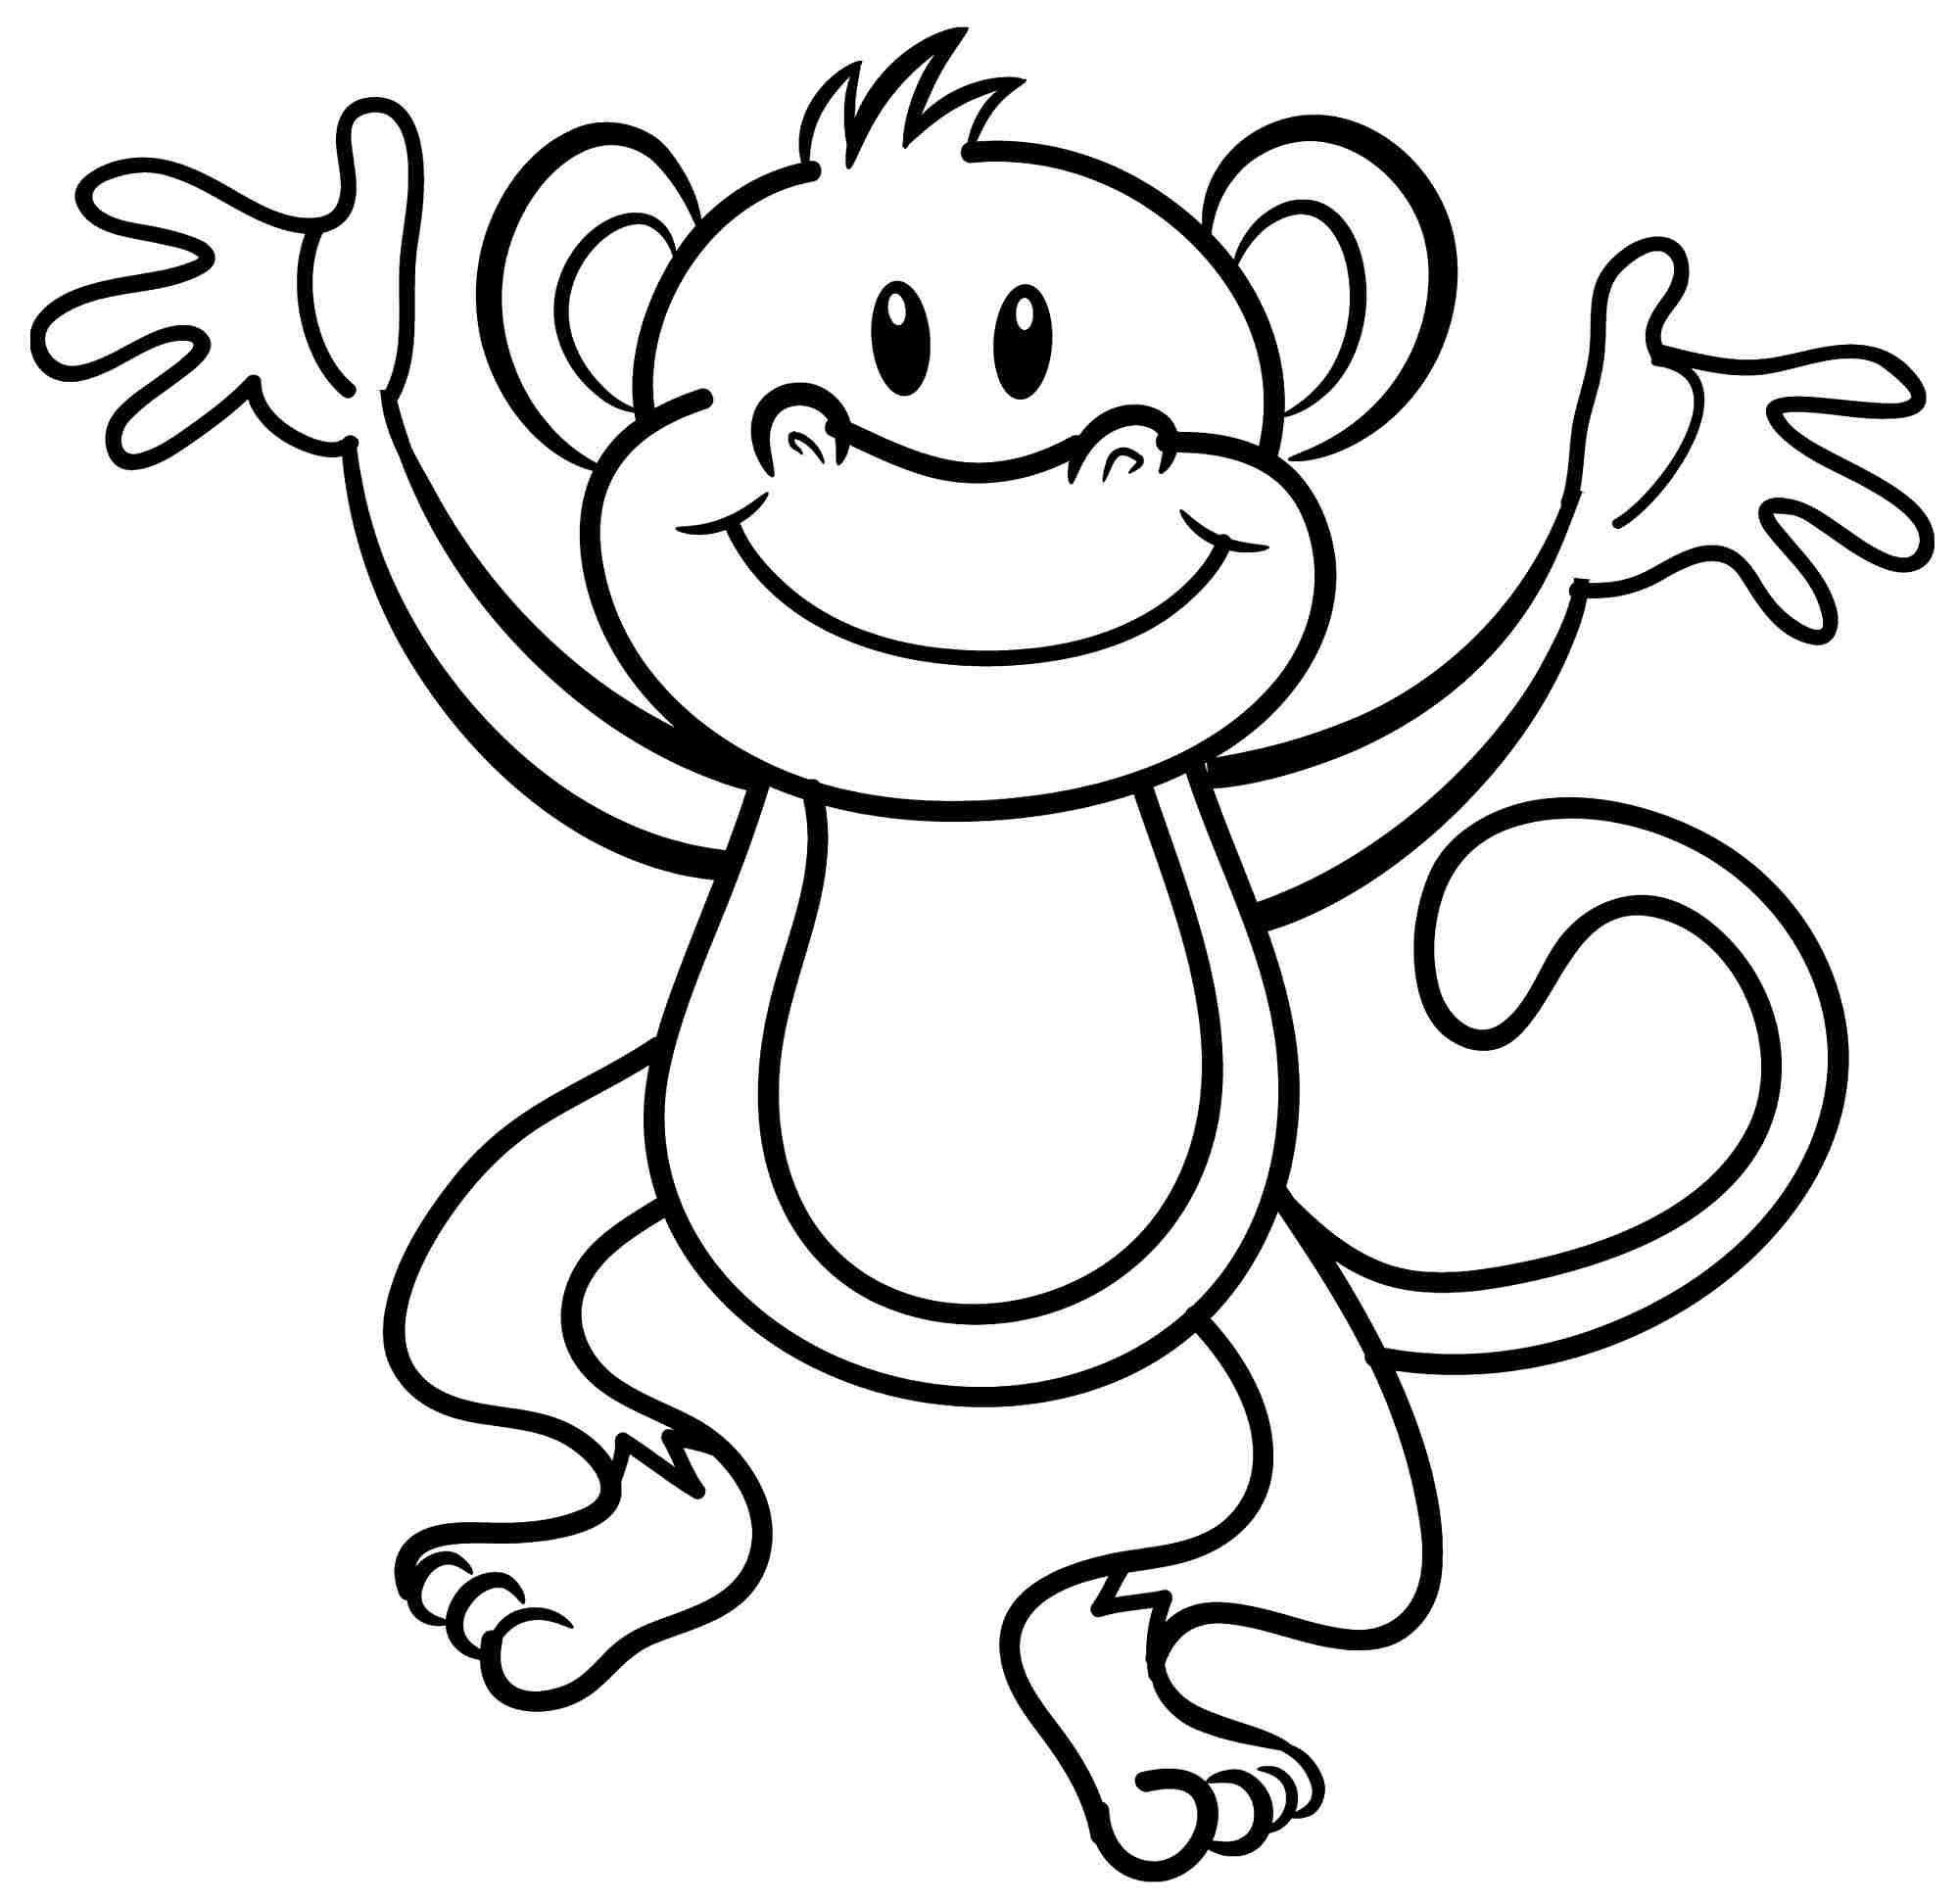 Monkey Cars Judo Colouring Pages Qaf Kerd Monkey